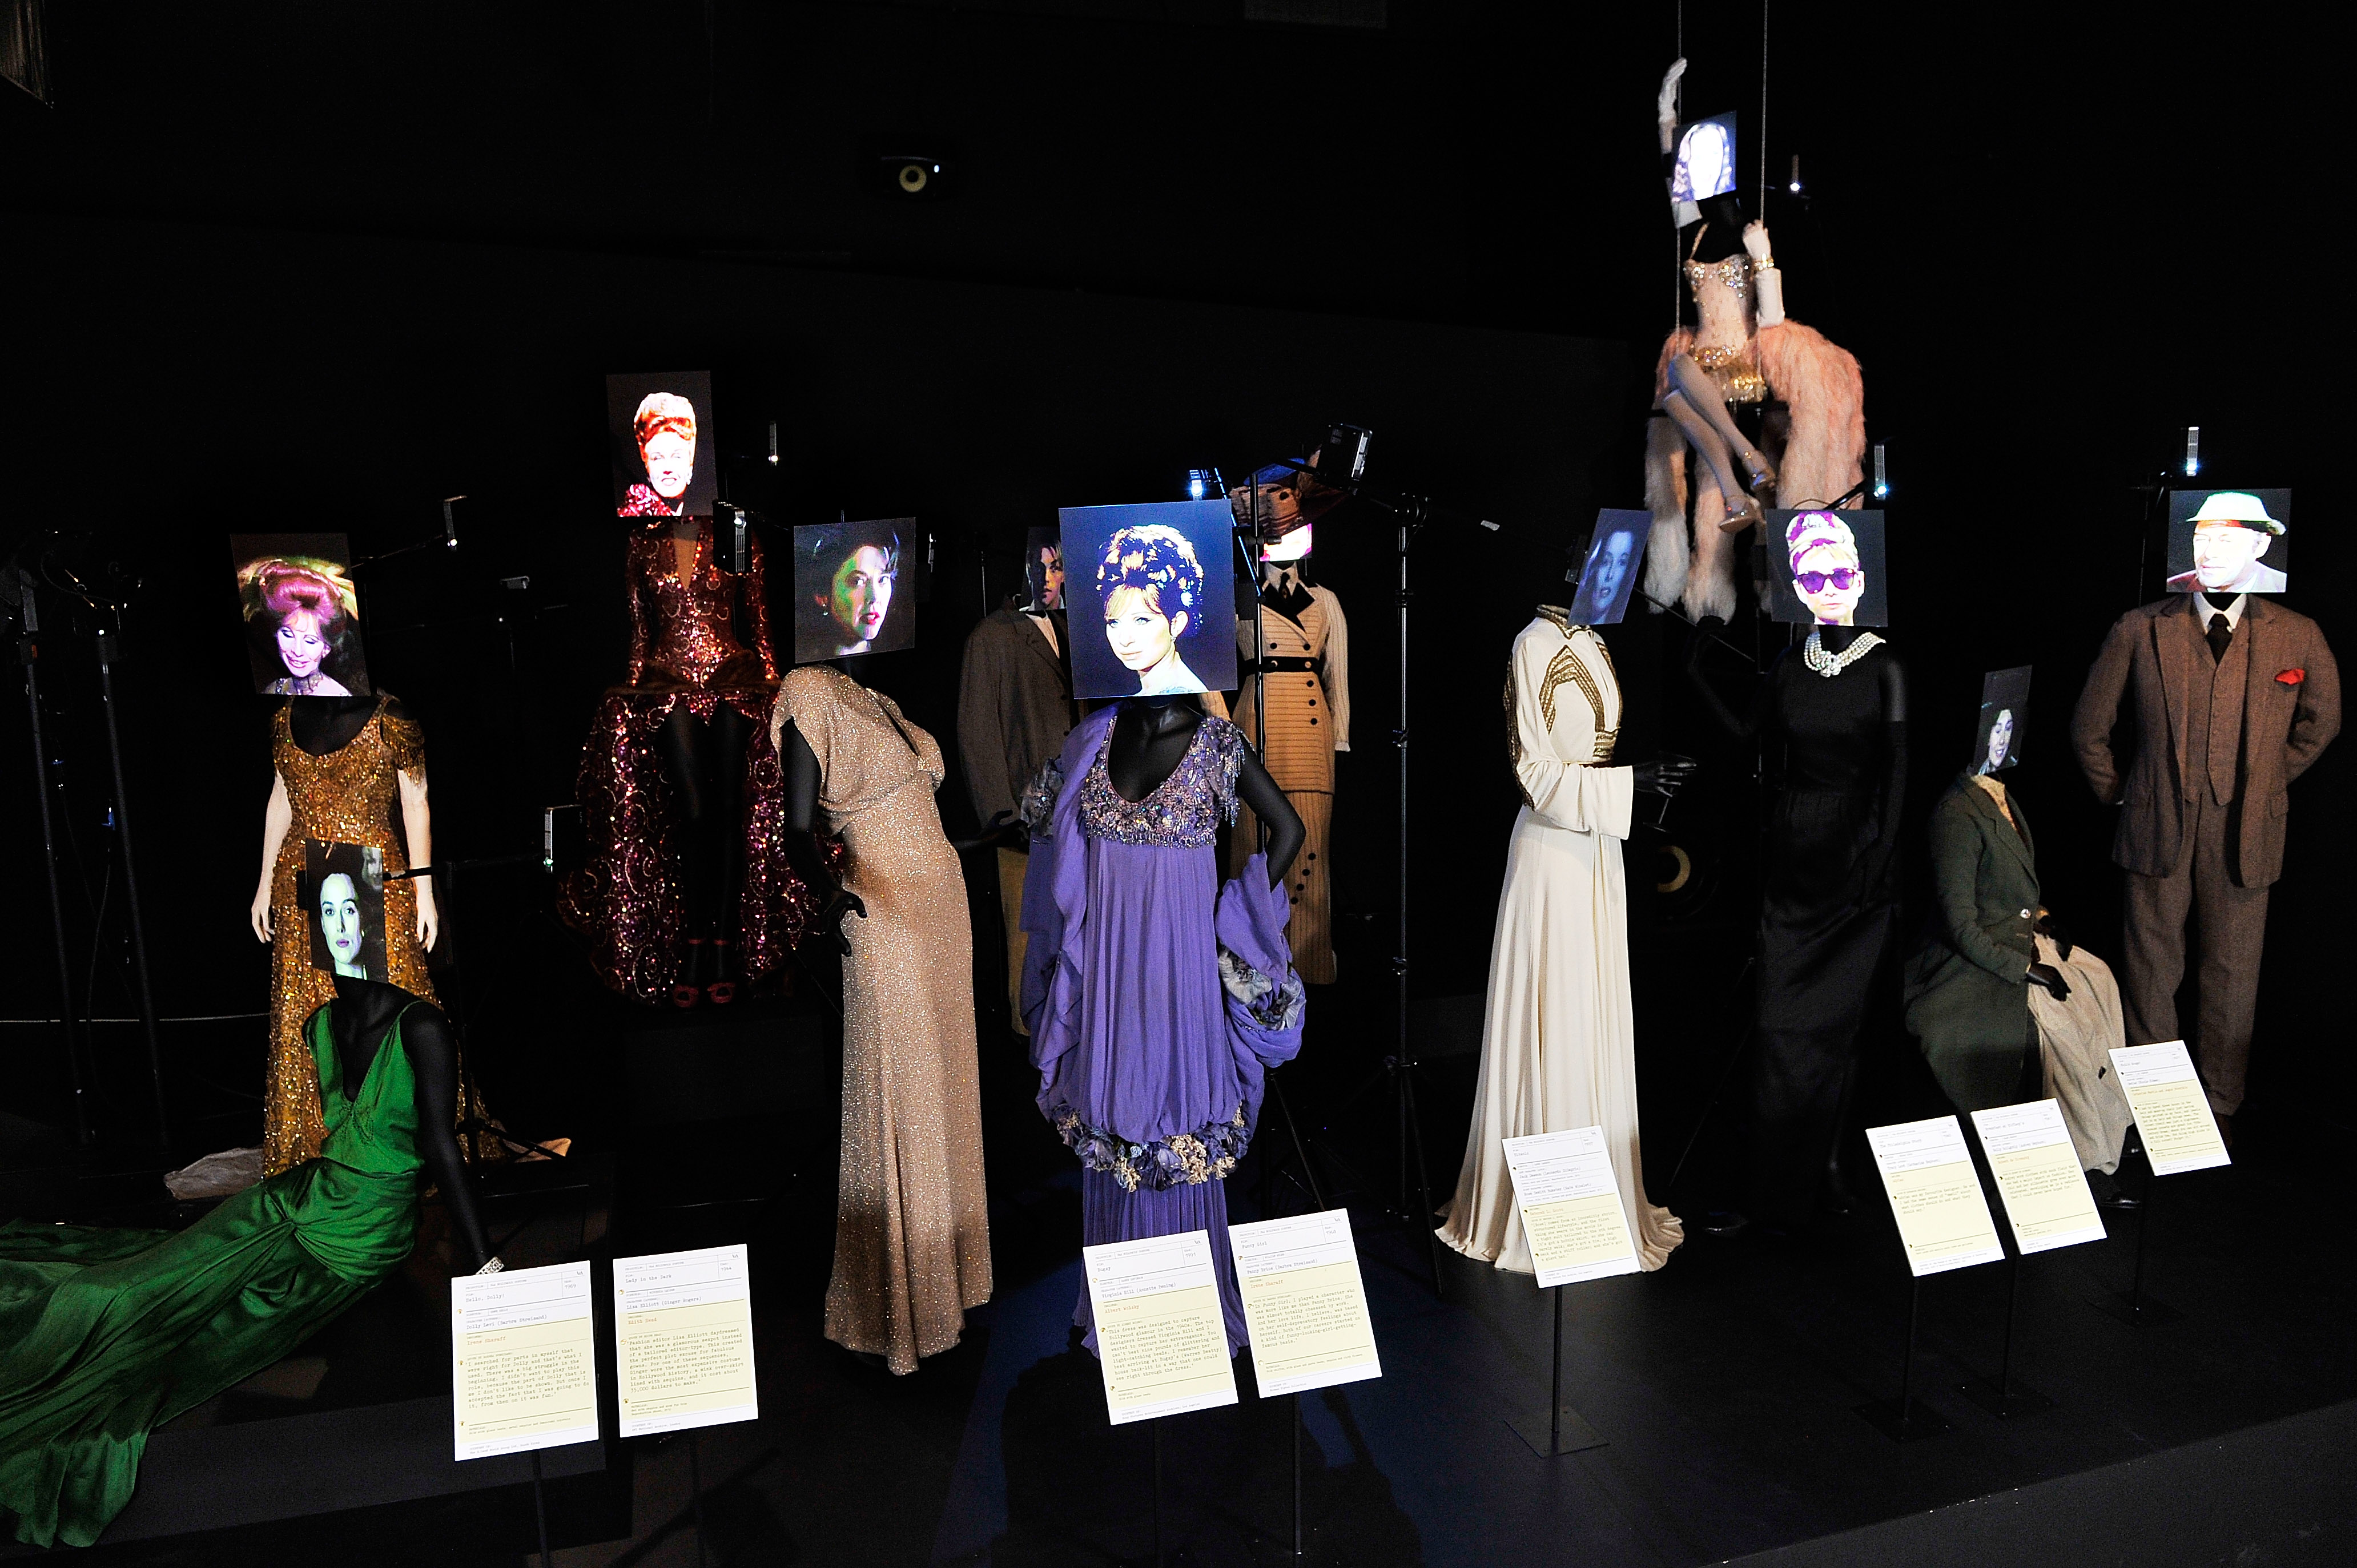 153934827JO016 The V A s Ho Final Week: Last Chance to see 'Hollywood Costume' at The V&A